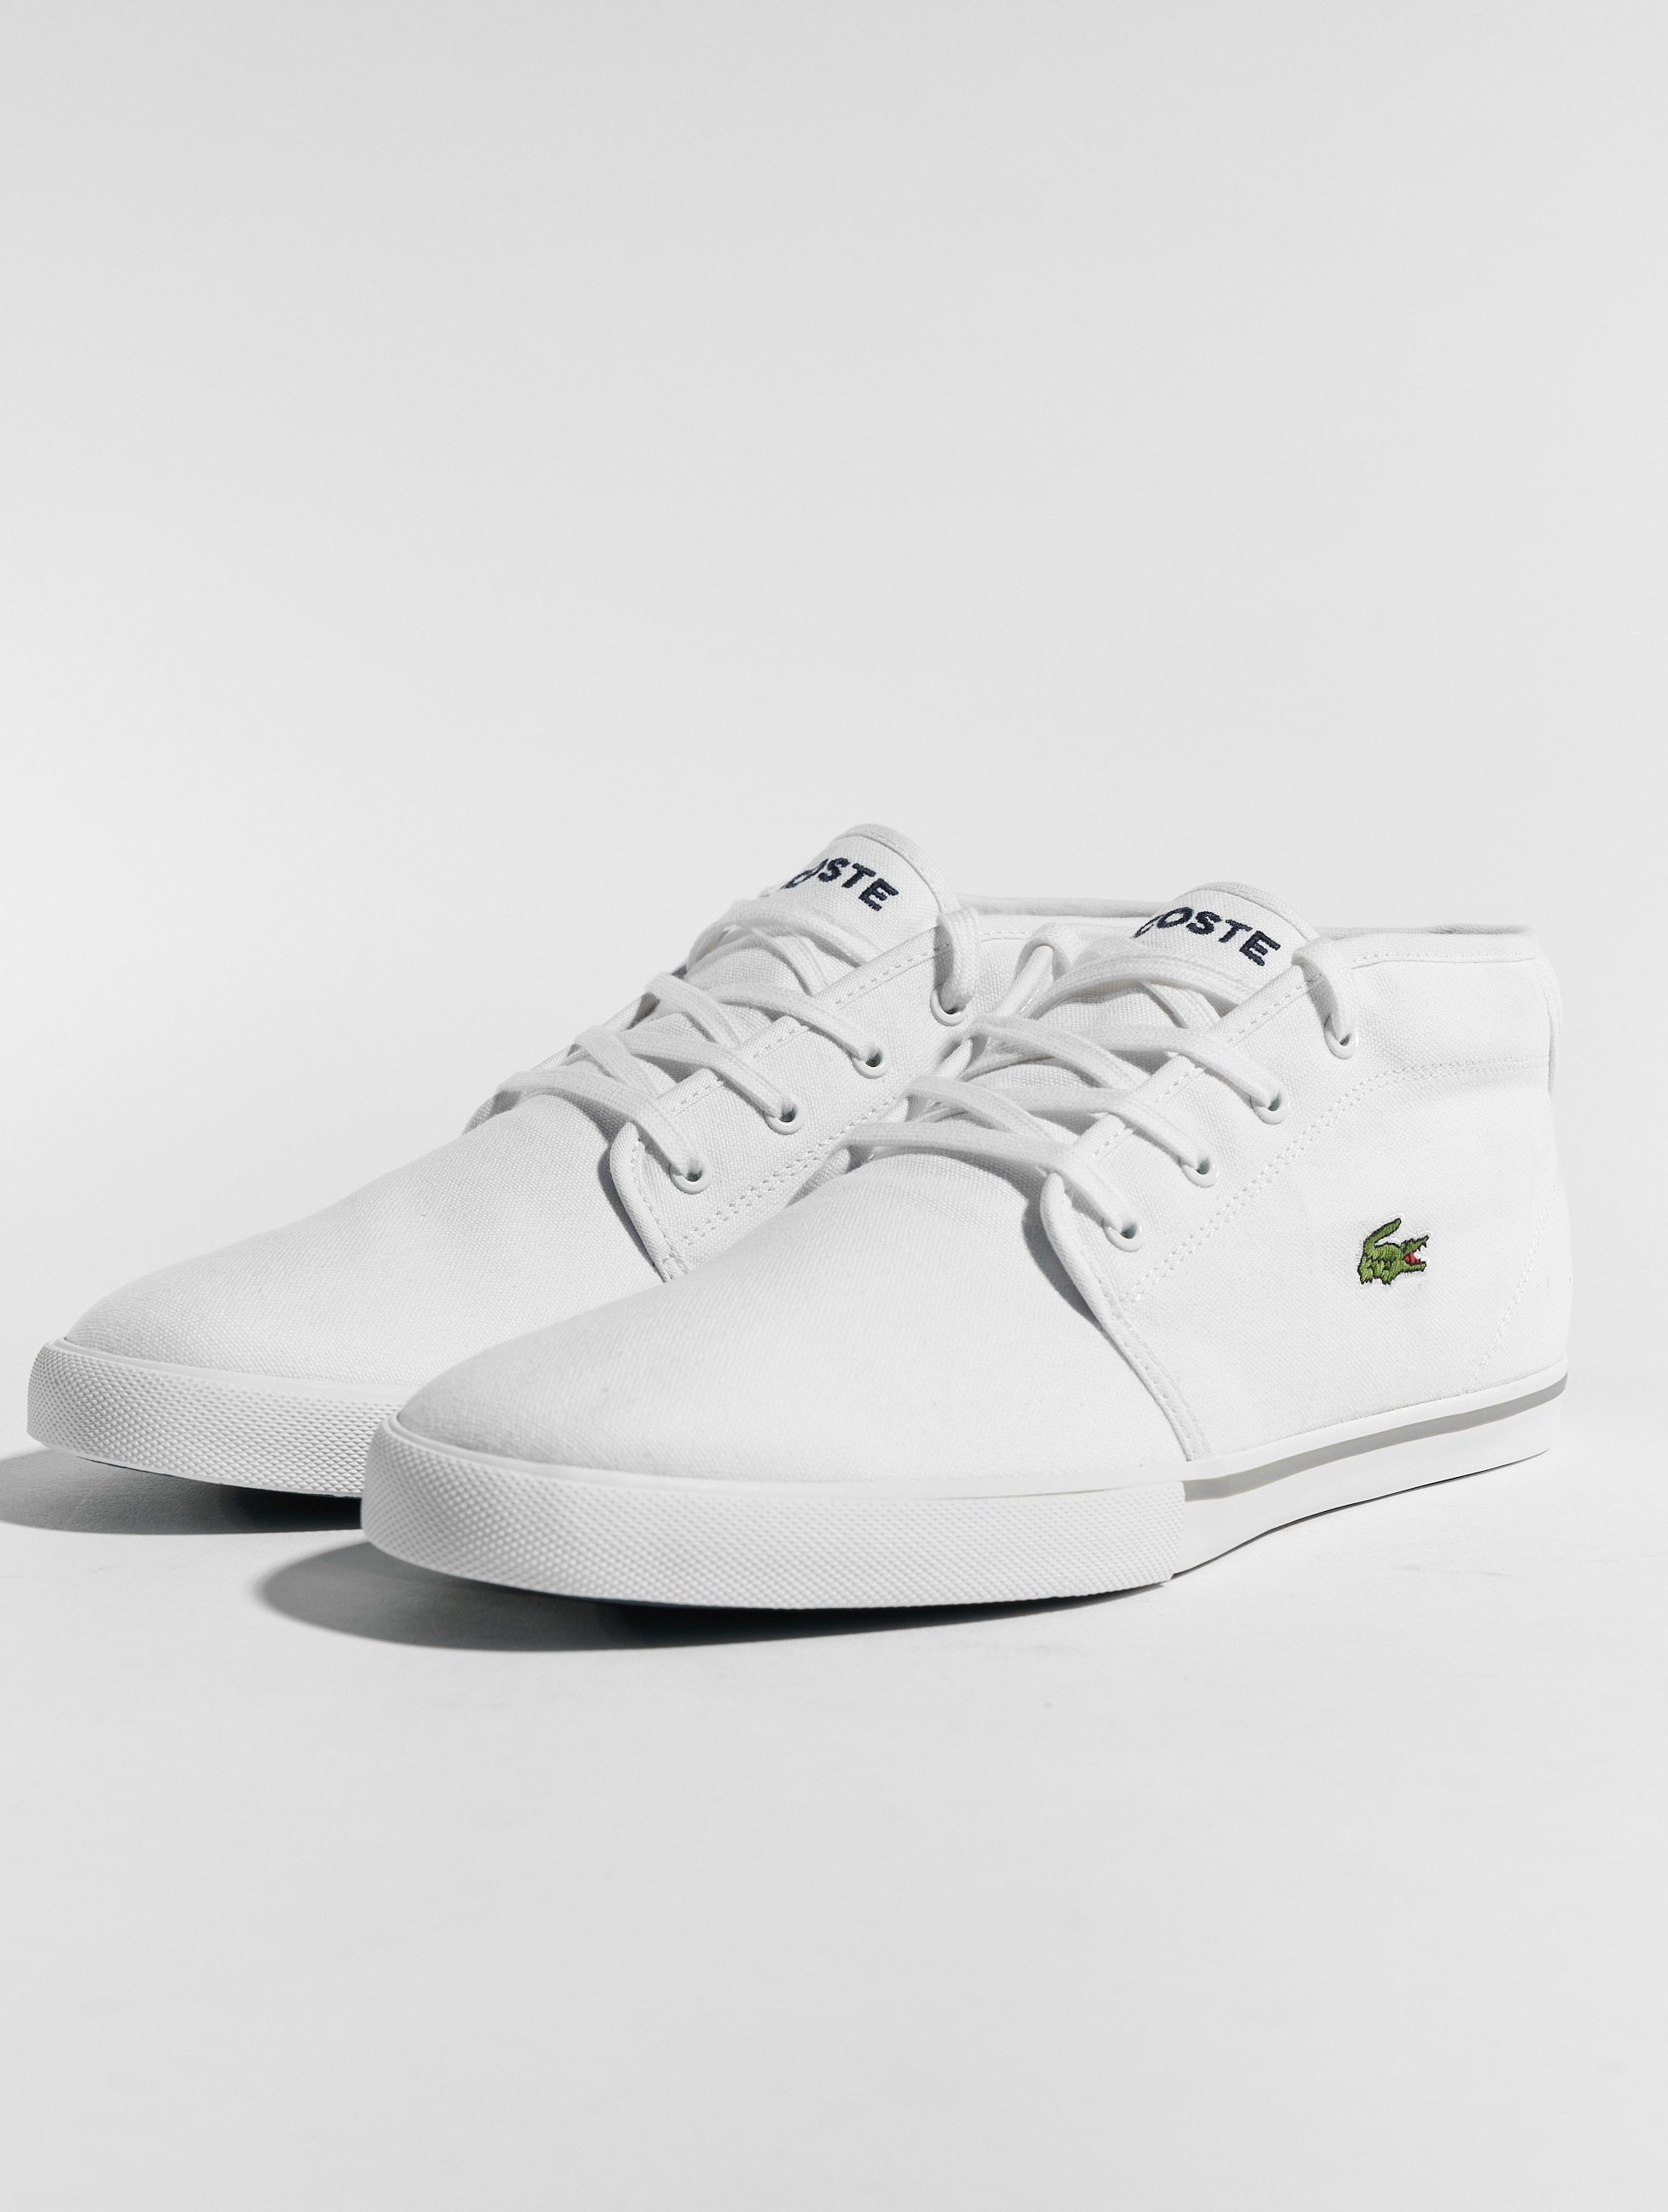 lacoste herren sneaker ampthill lcr2 spm in wei 169191. Black Bedroom Furniture Sets. Home Design Ideas